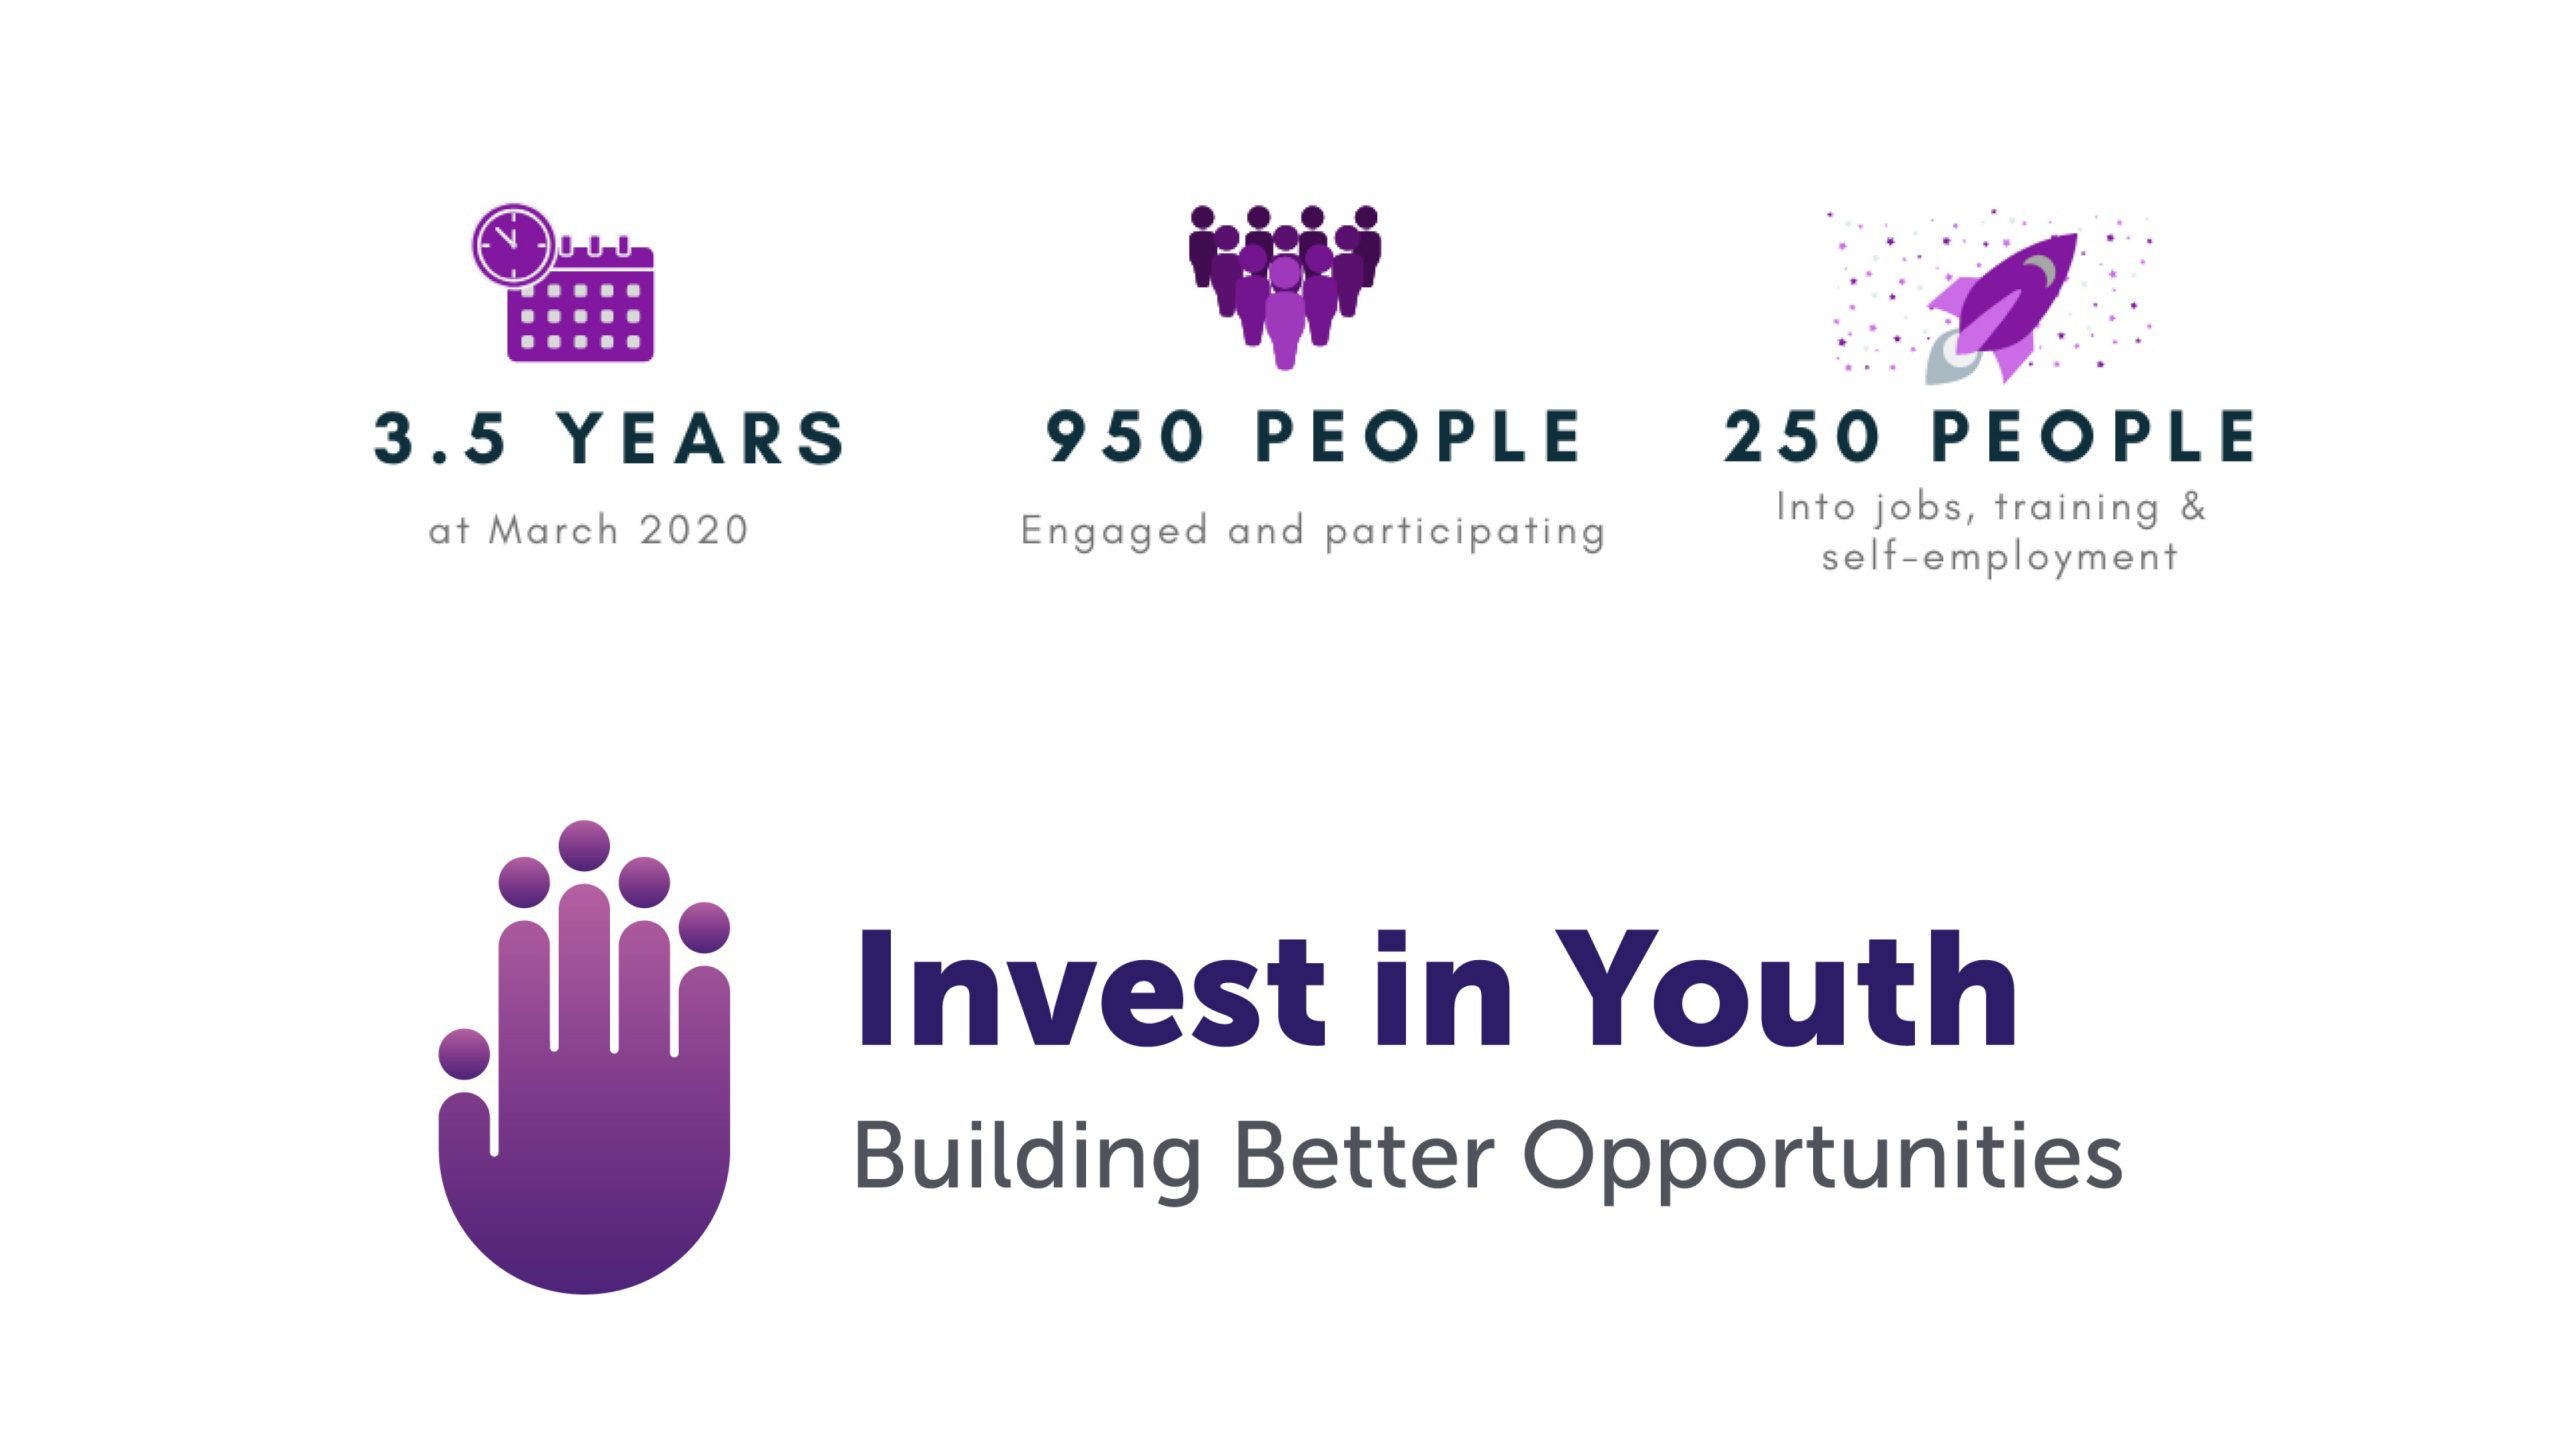 iNVEST IN yOUTH